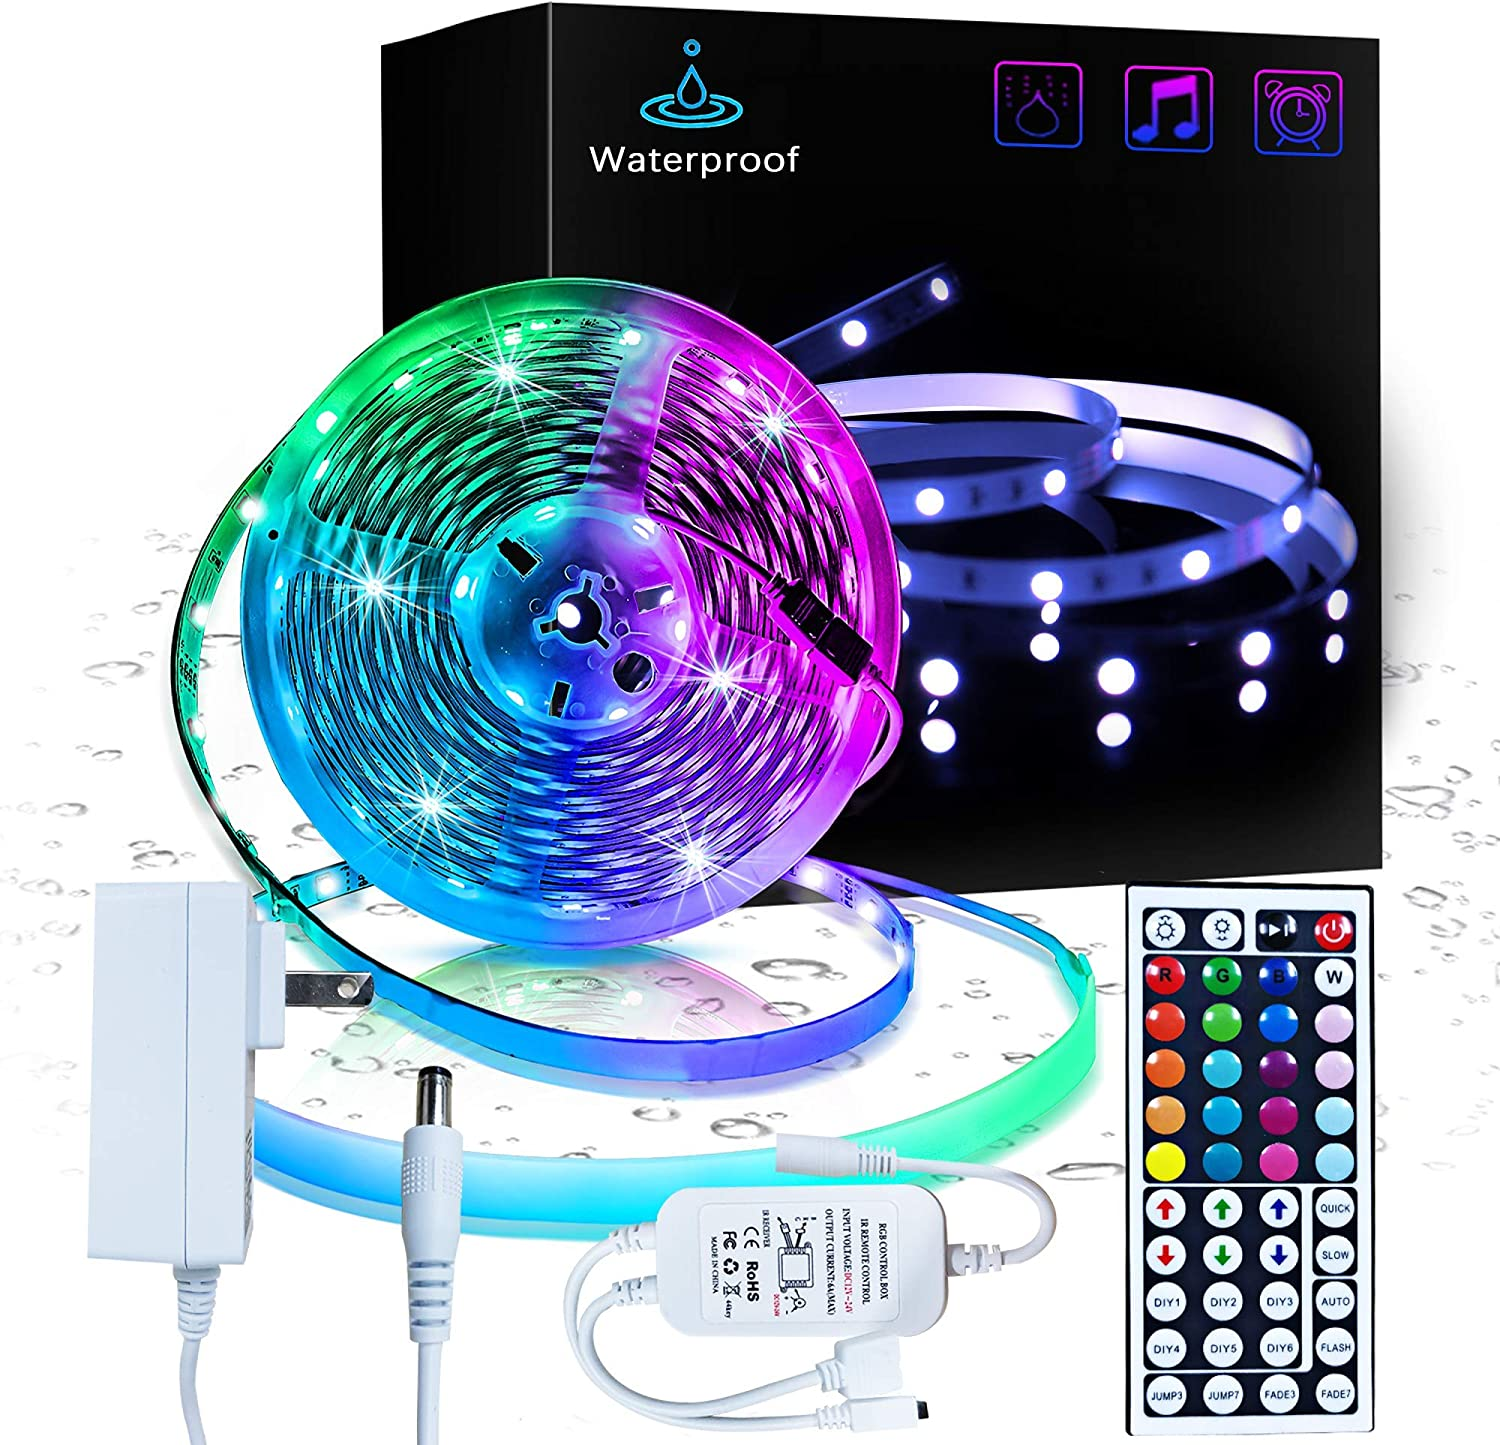 Amazon Com Inscrok 16 4ft Led Light Strips 5050 Rgb Waterproof Led Strip Lights For Bedroom Aesthetic Room Decor Home Decorations Home Improvement Led strip lights also boast numerous color options that you can change depending on the mood. inscrok 16 4ft led light strips 5050 rgb waterproof led strip lights for bedroom aesthetic room decor home decorations